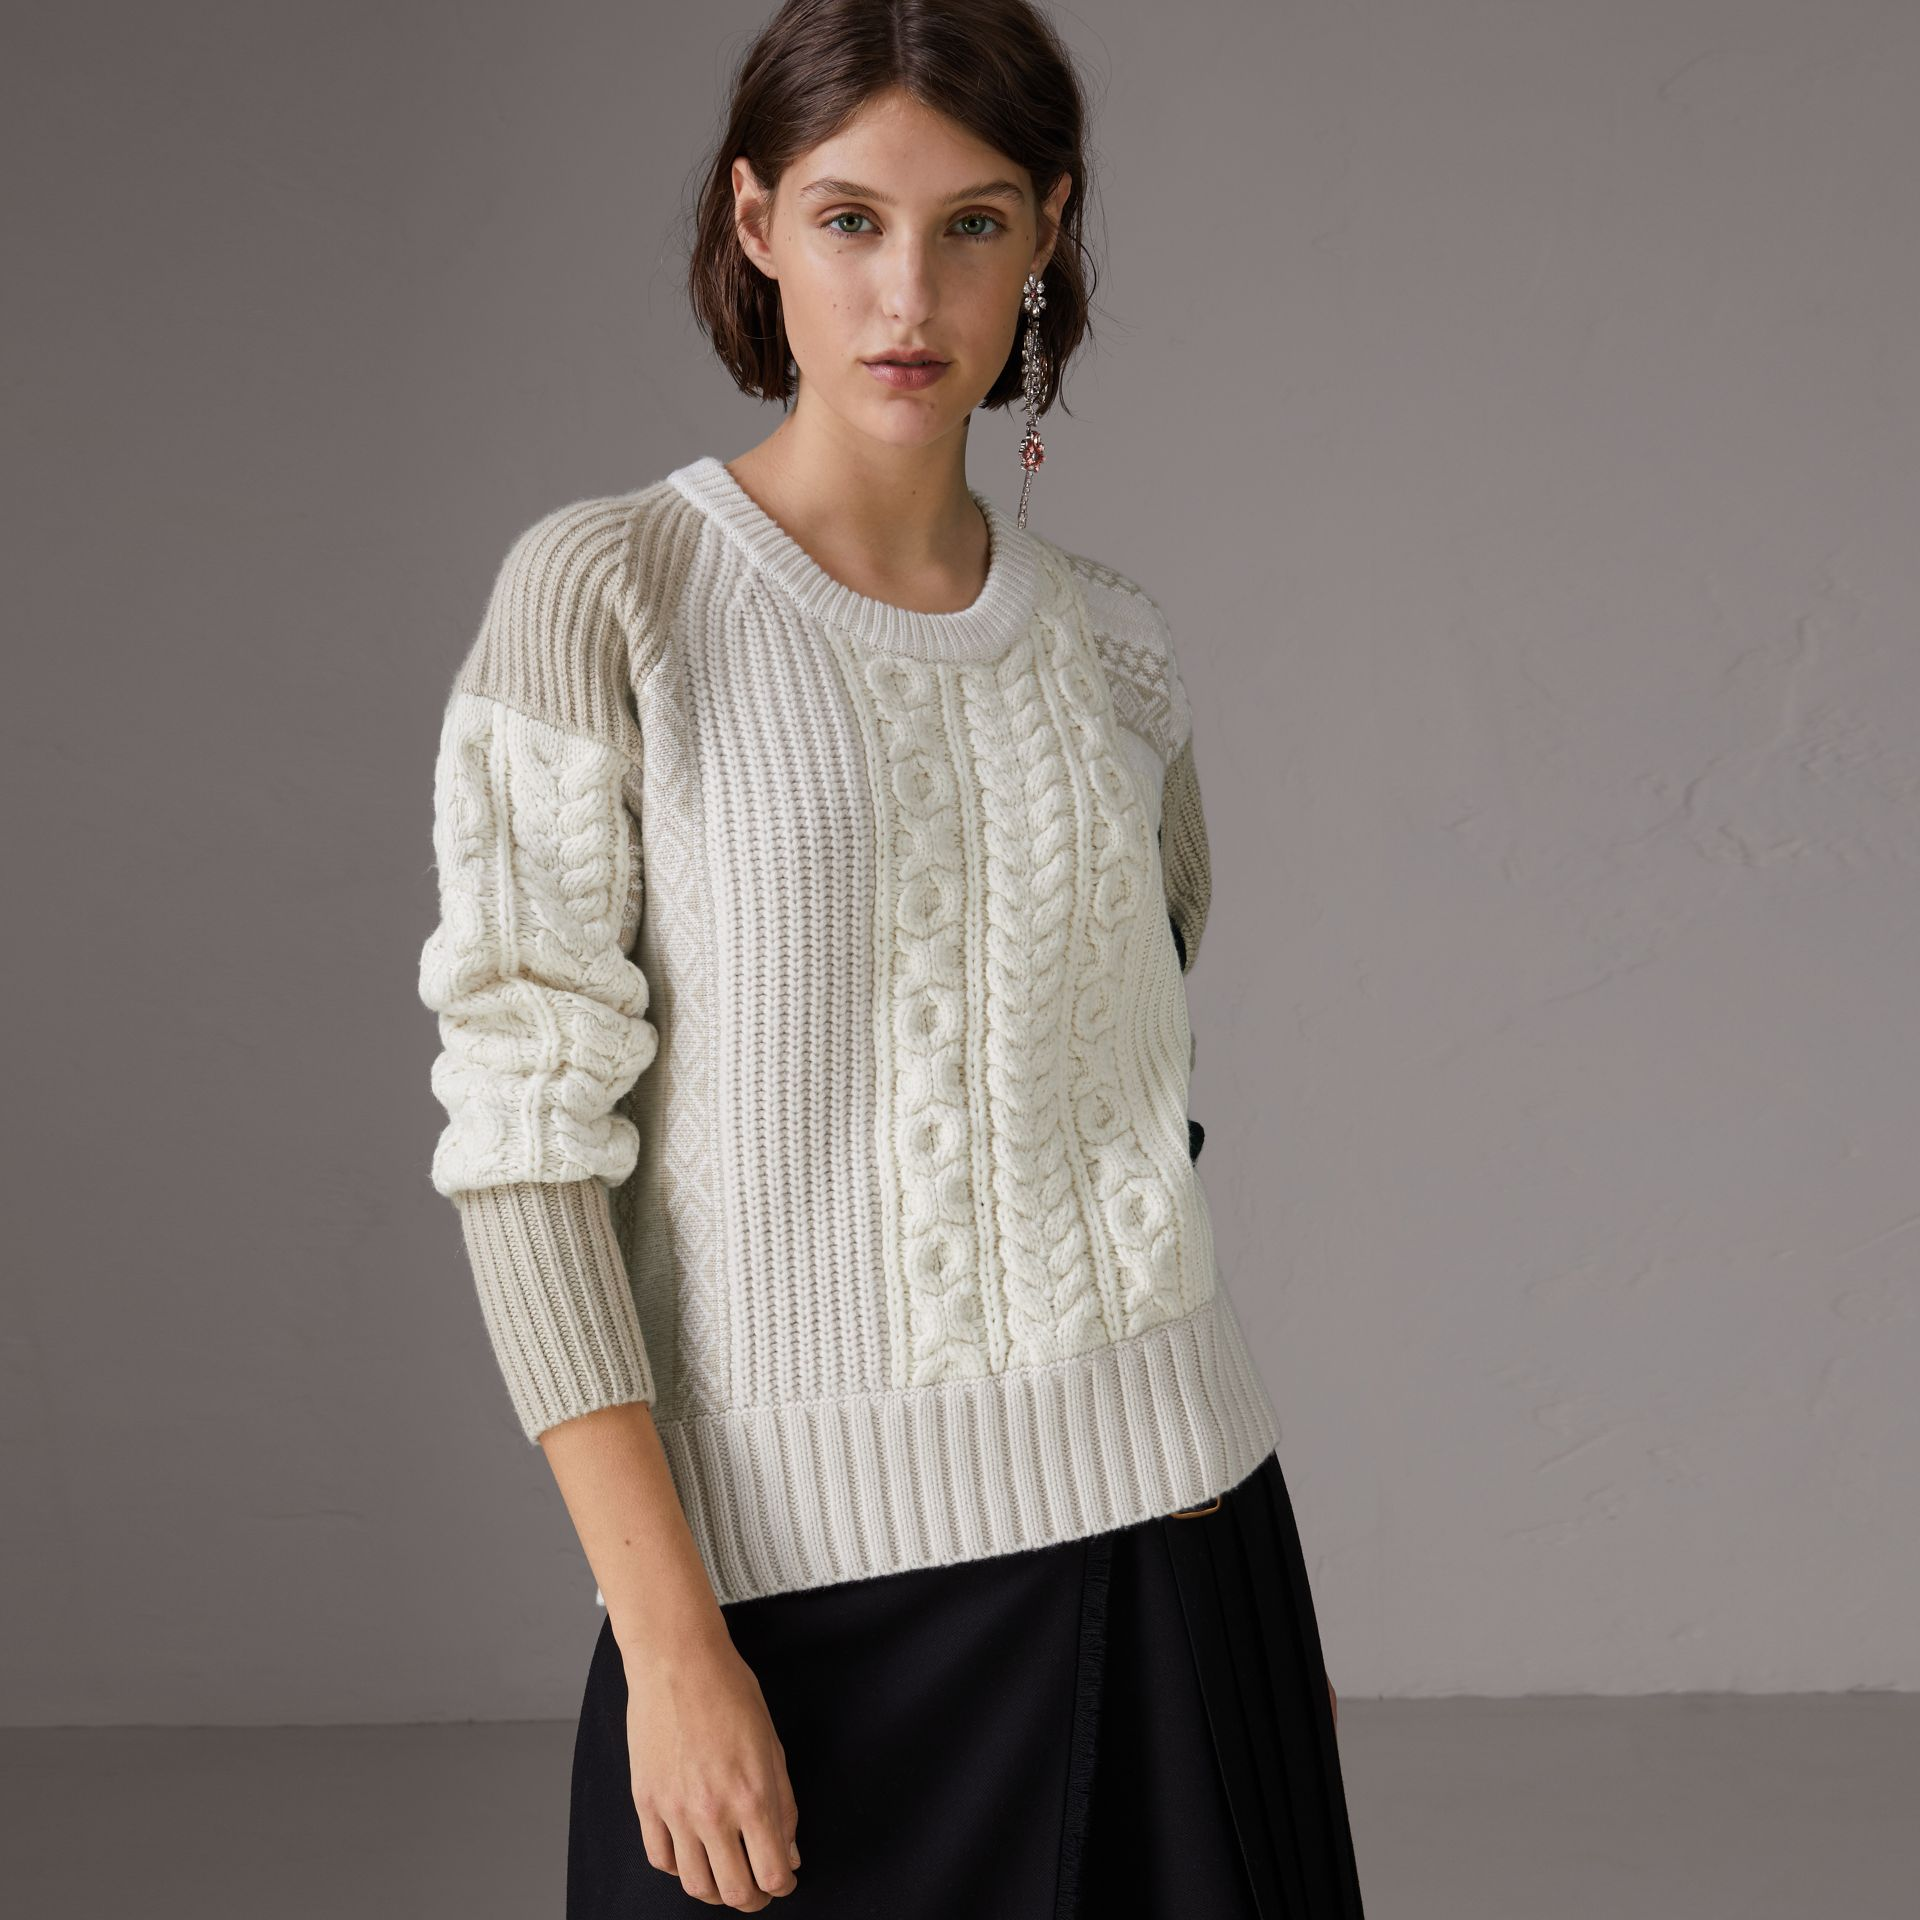 Colour Block Fair Isle and Cable Knit Wool Cashmere Sweater in Ivory - Women | Burberry - gallery image 0